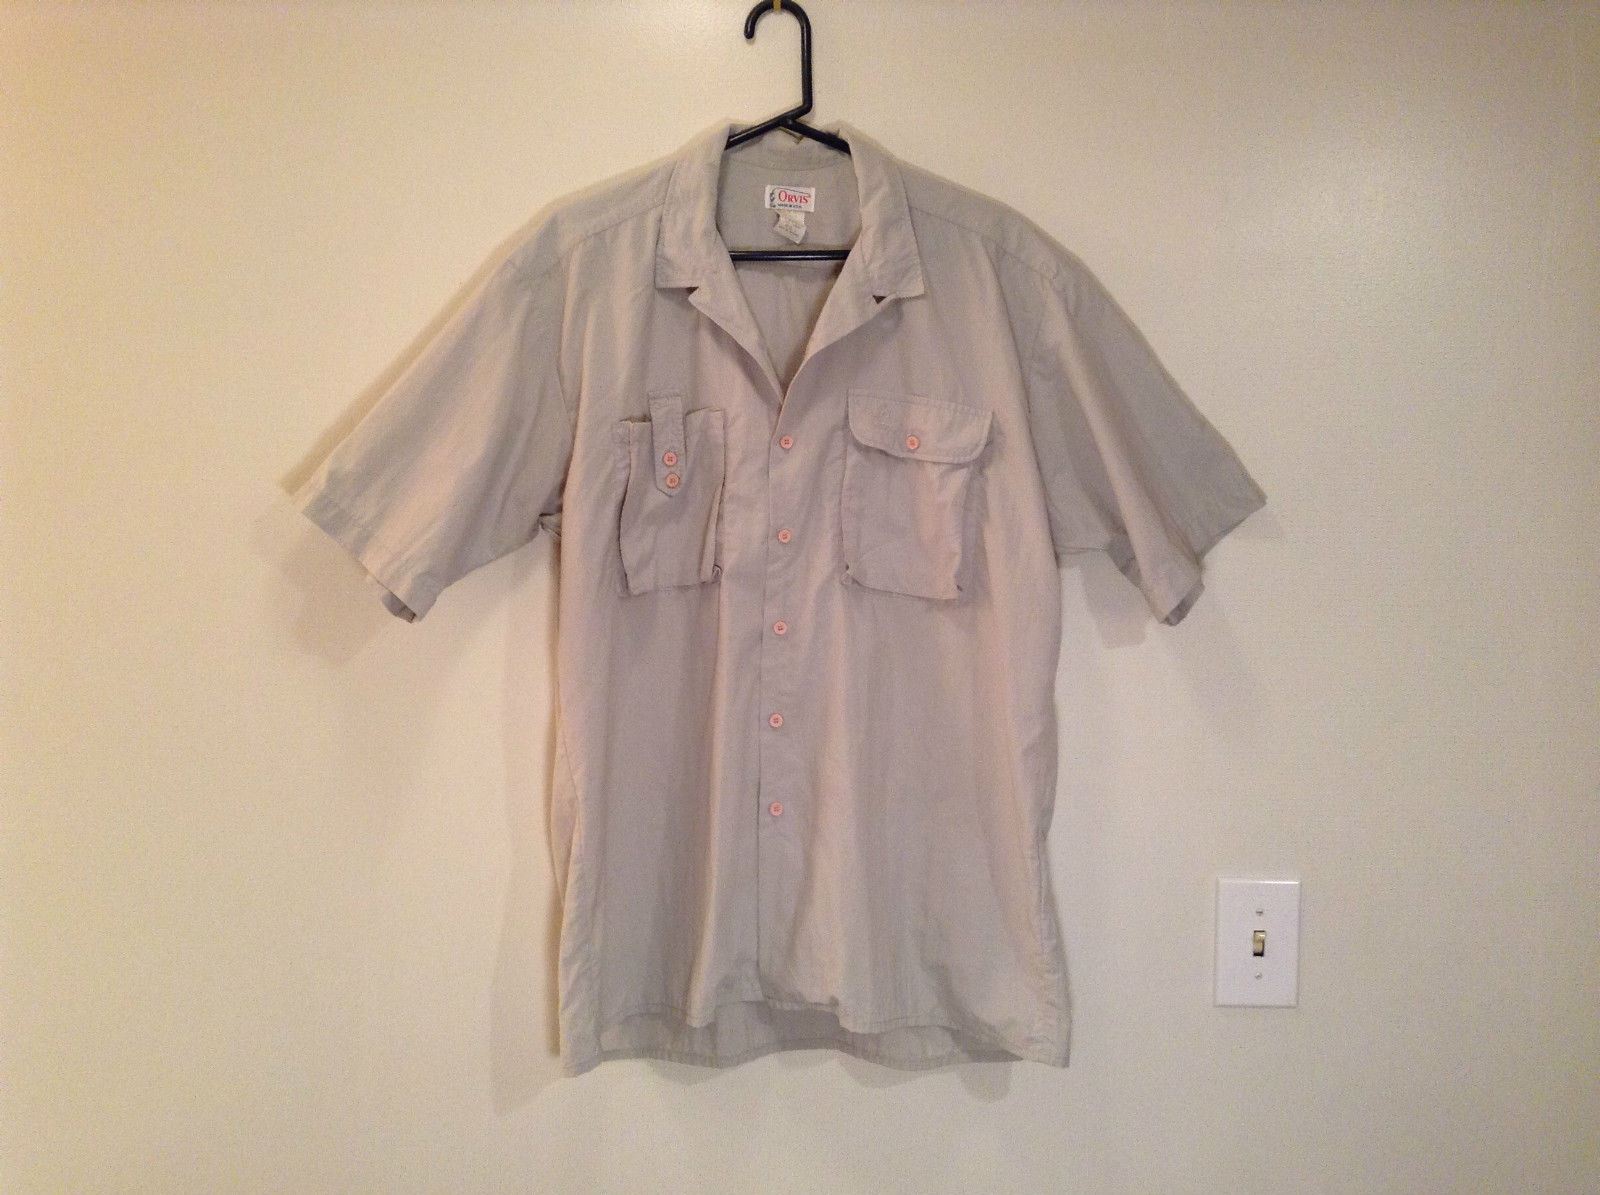 Light Gray Short Sleeve Orvis 100 Percent Nylon Button Up Shirt Size Large